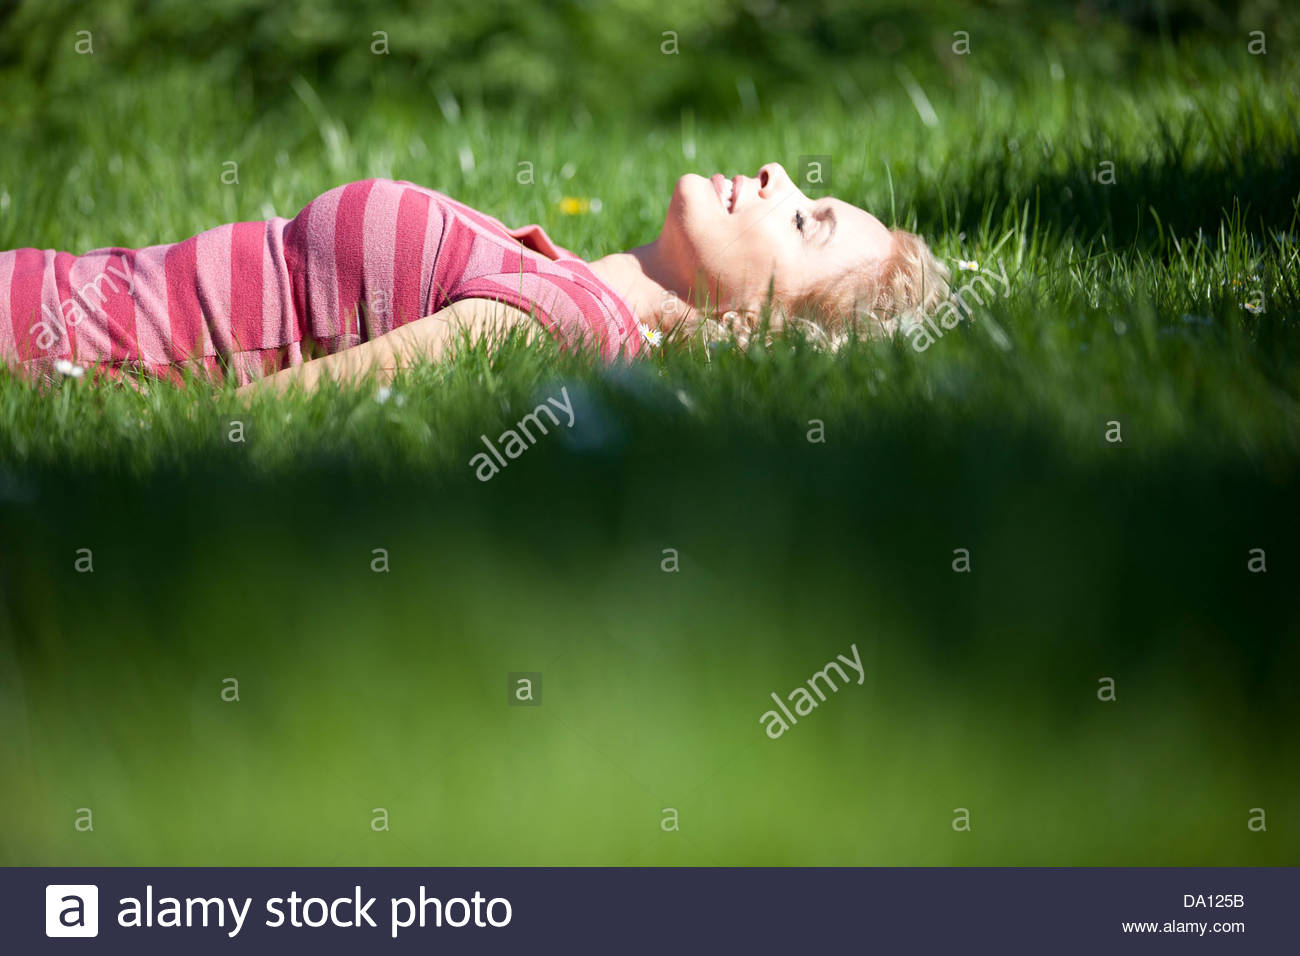 A mature woman laying in the grass in summertime, smiling - Stock Image